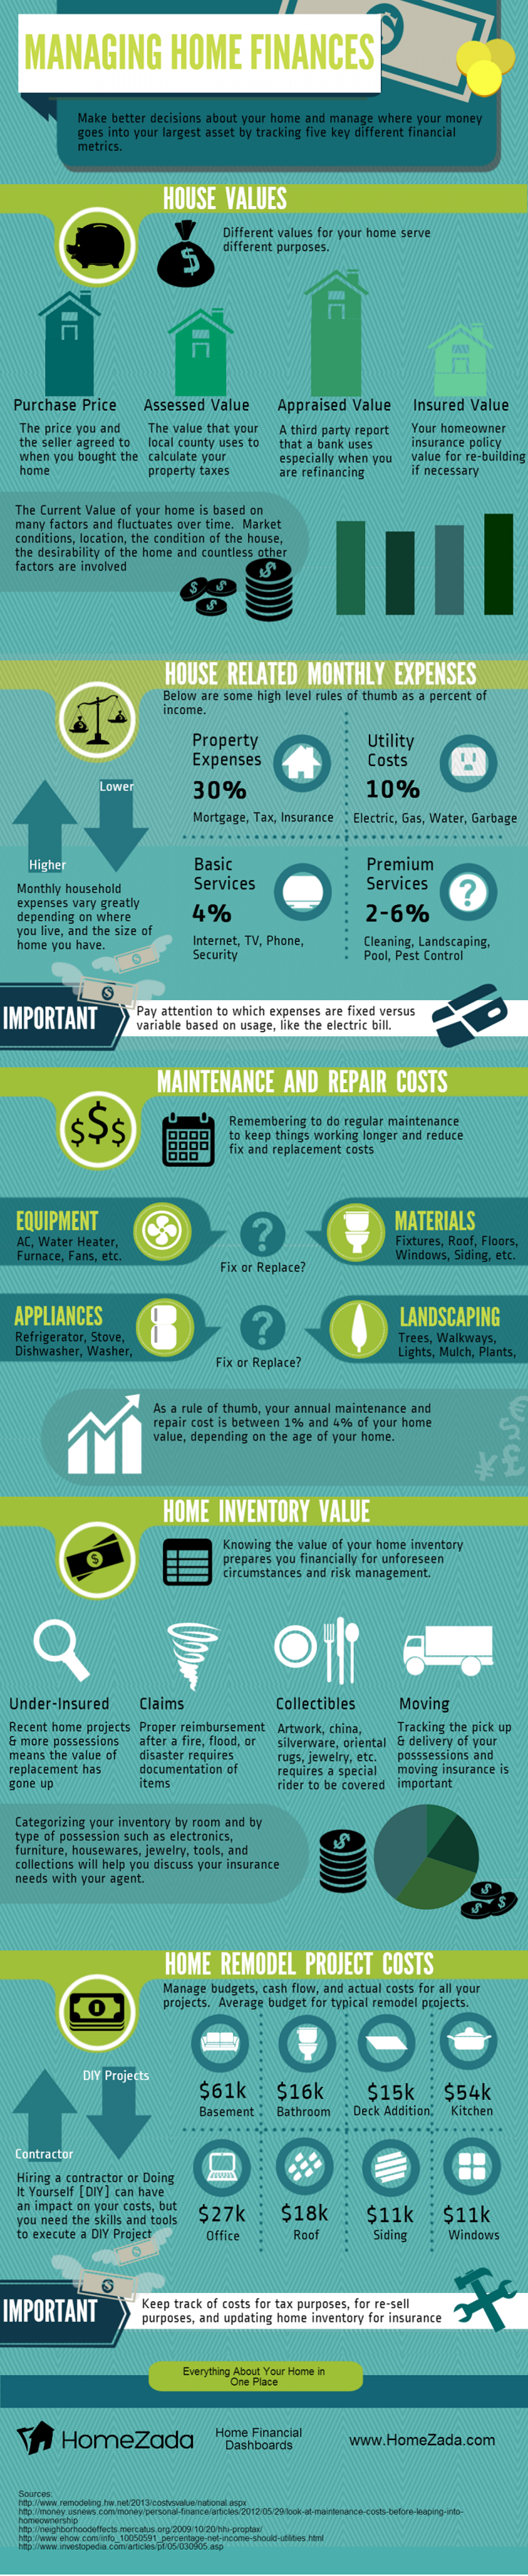 Five Metrics to Managing Home Finances Infographic